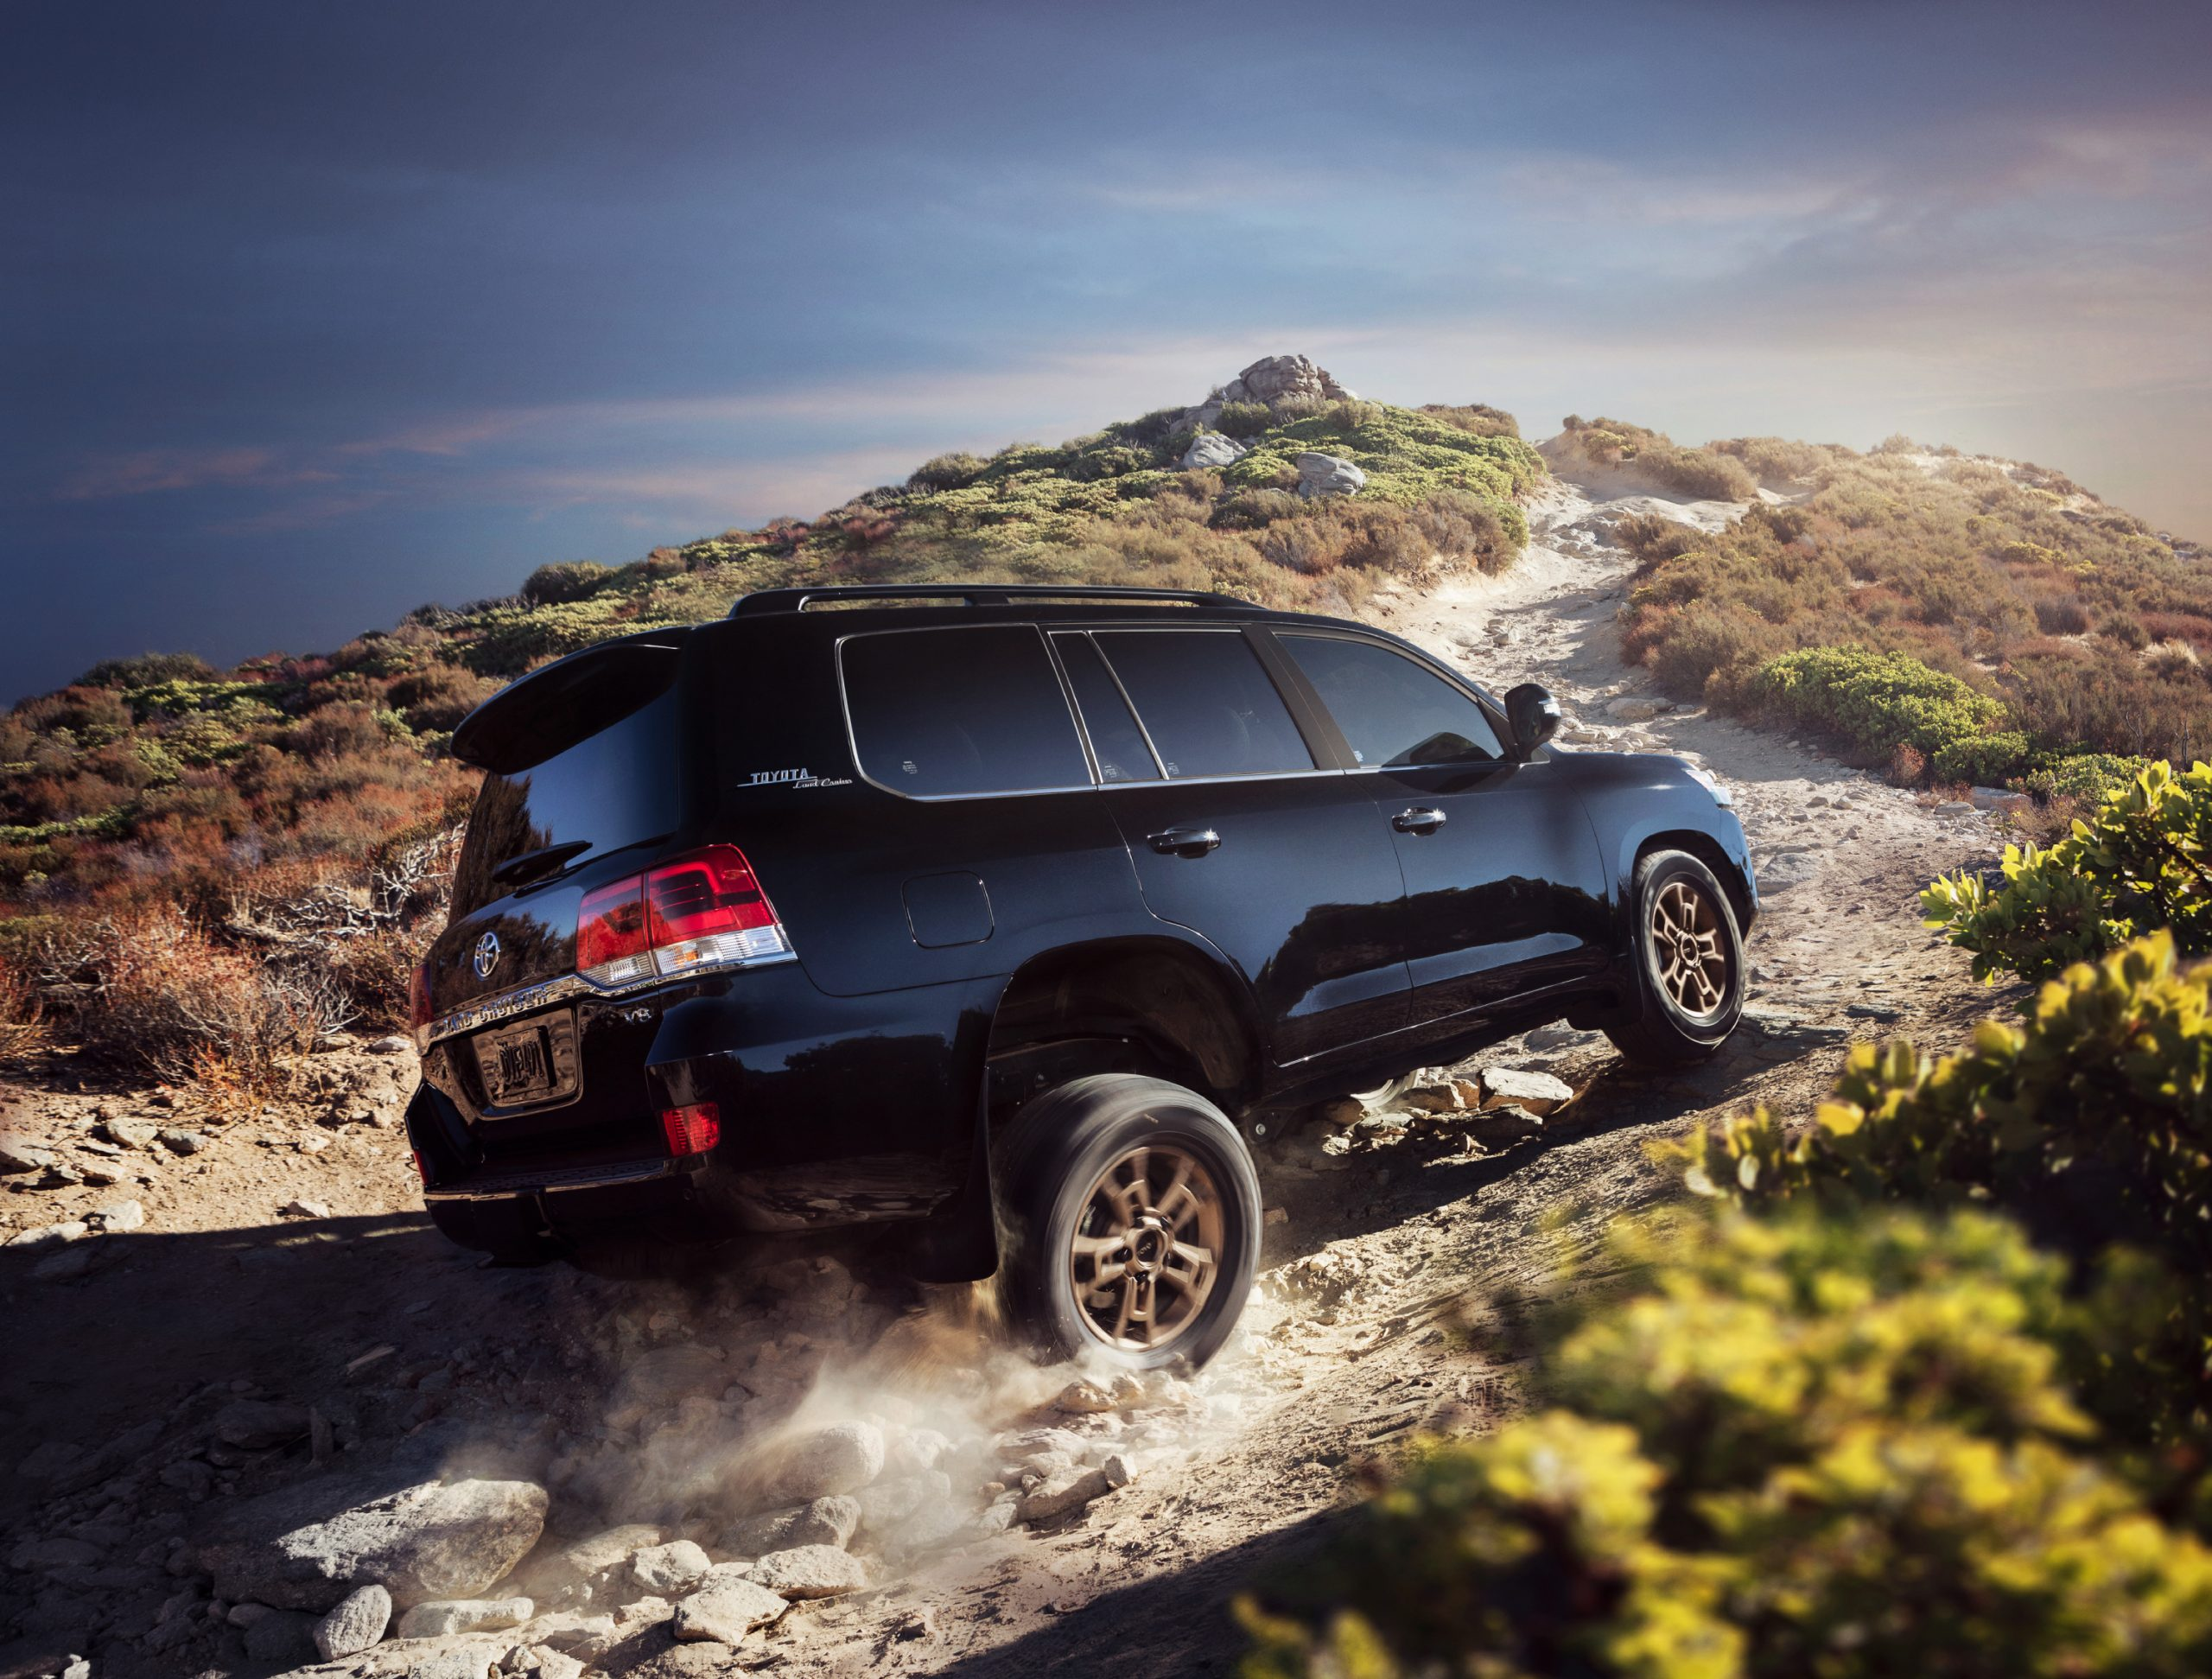 The current (2008-2021) Toyota Land Cruiser generation driving off-road